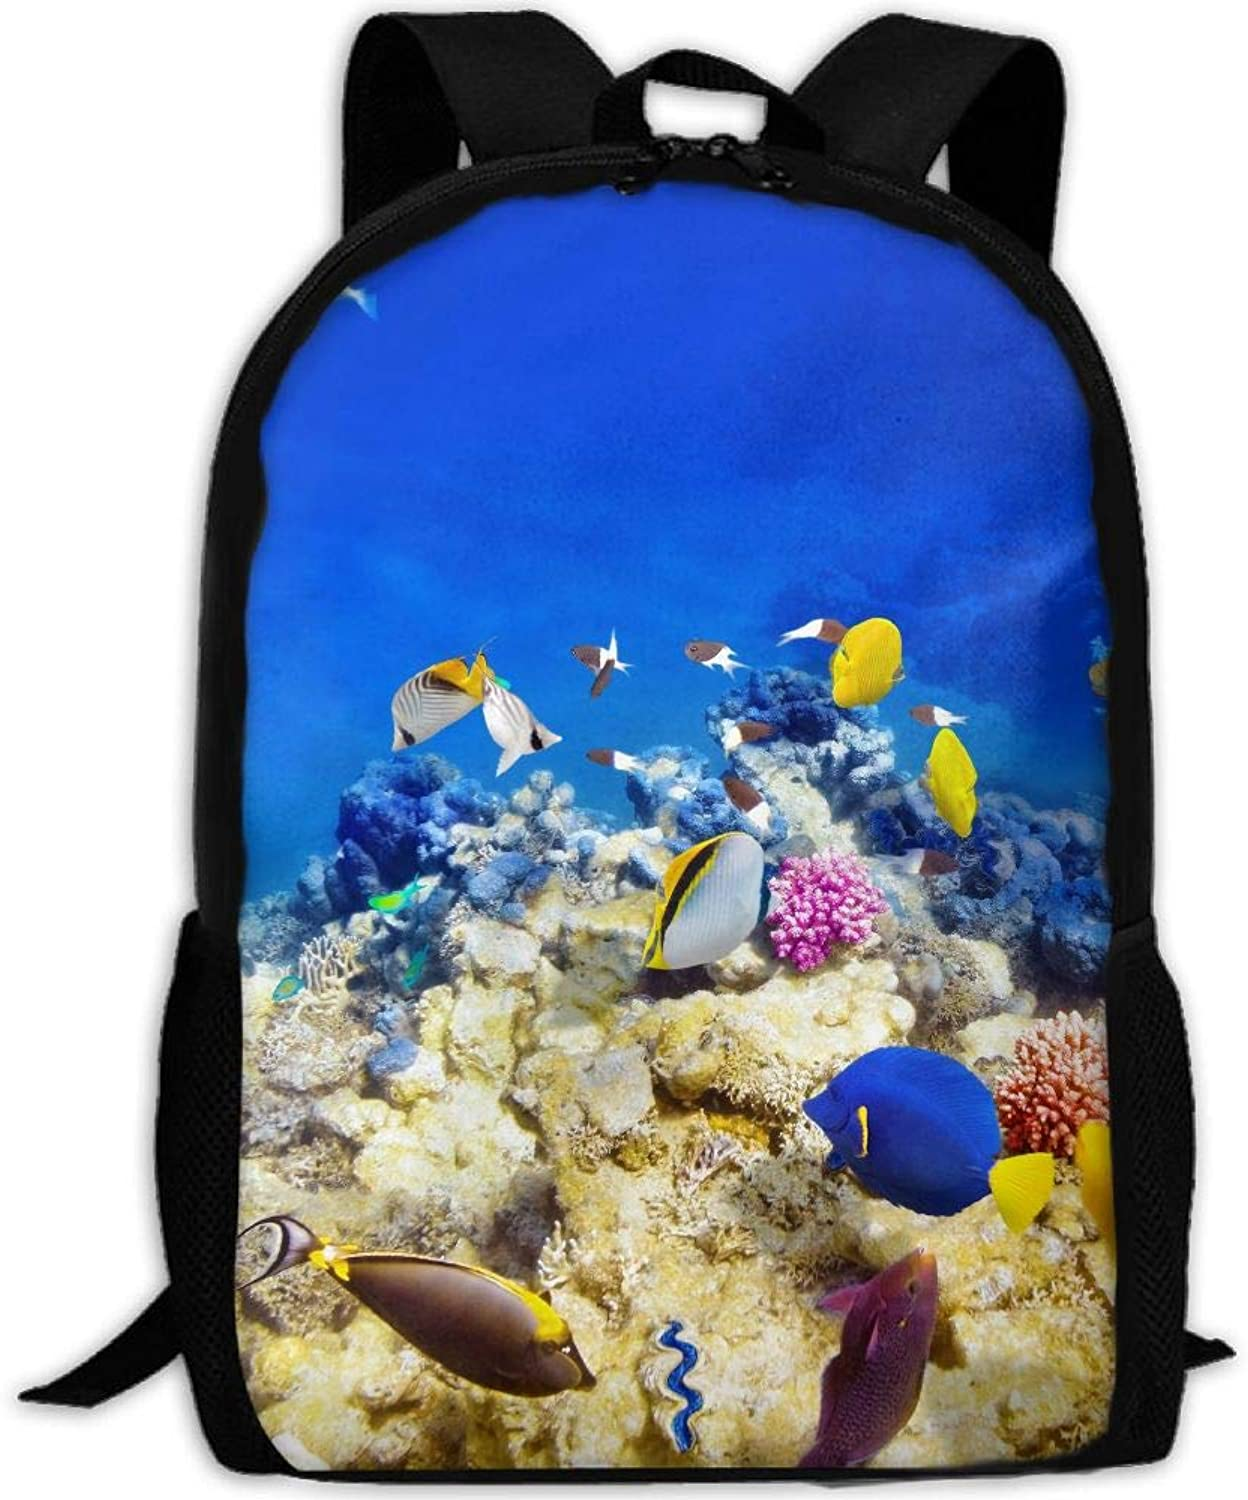 91d247f2d6f8 Adult Backpack Fishes College Daypack Oxford Bag Unisex Travel ...